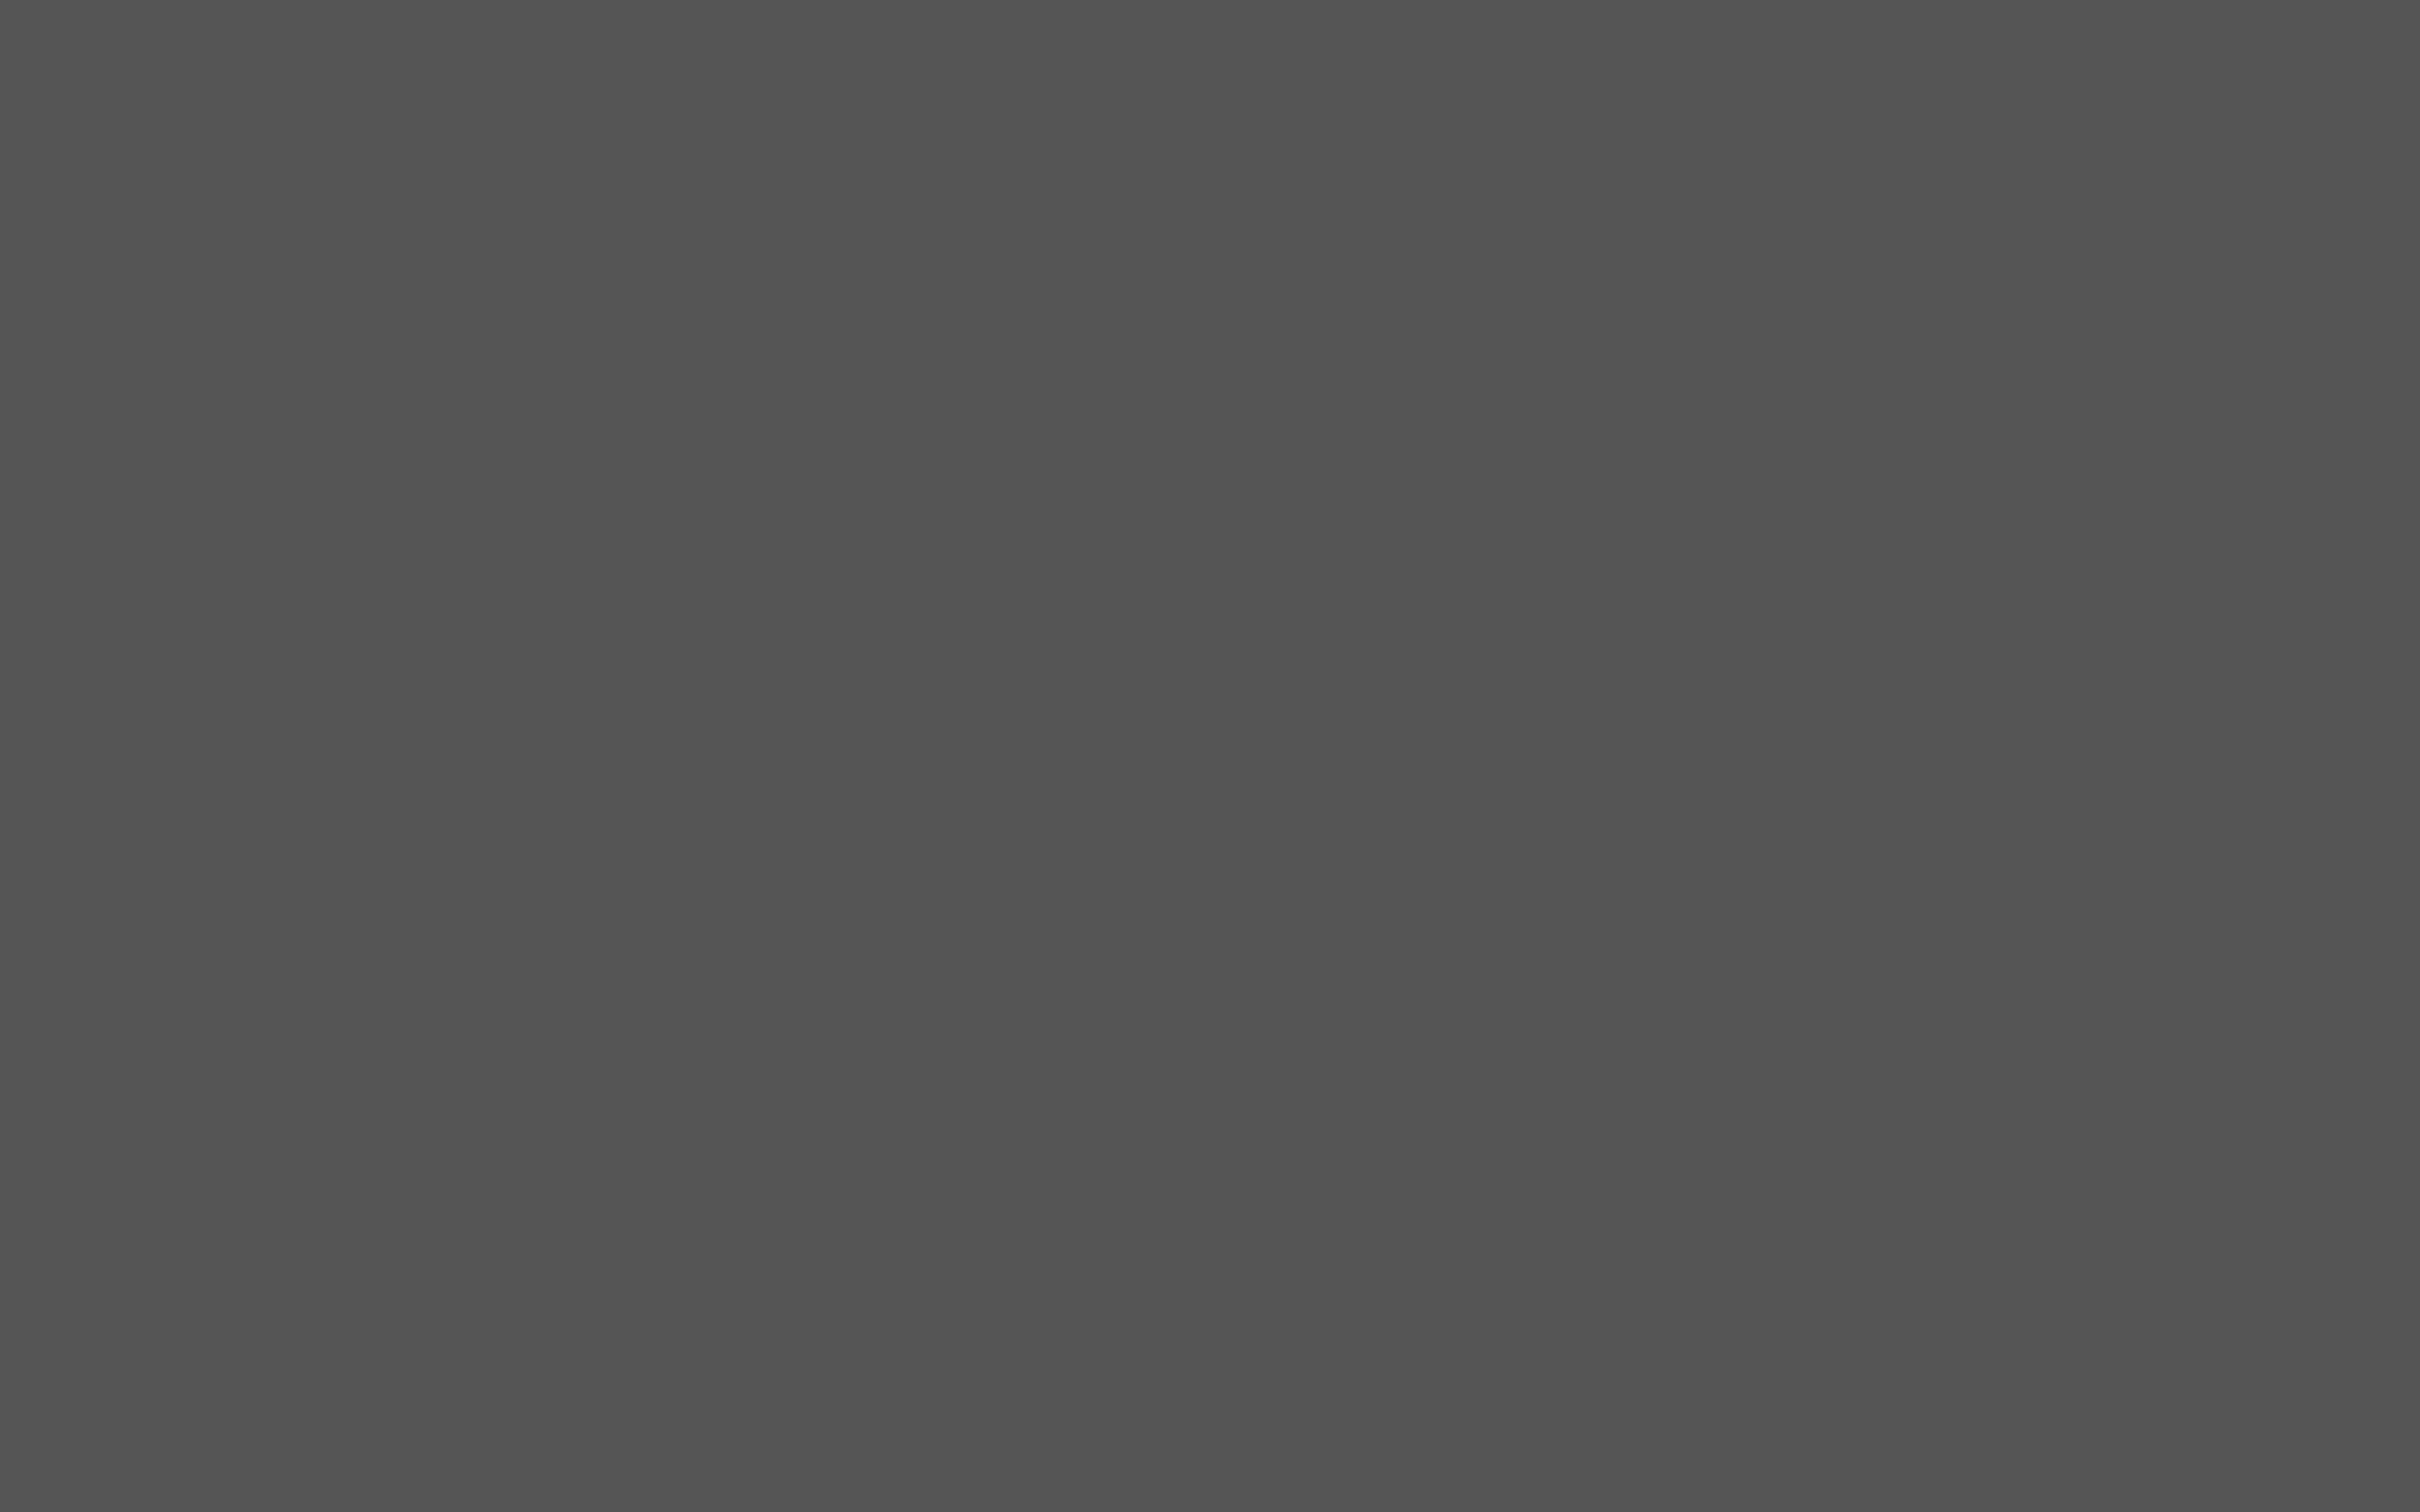 2560x1600 Davys Grey Solid Color Background